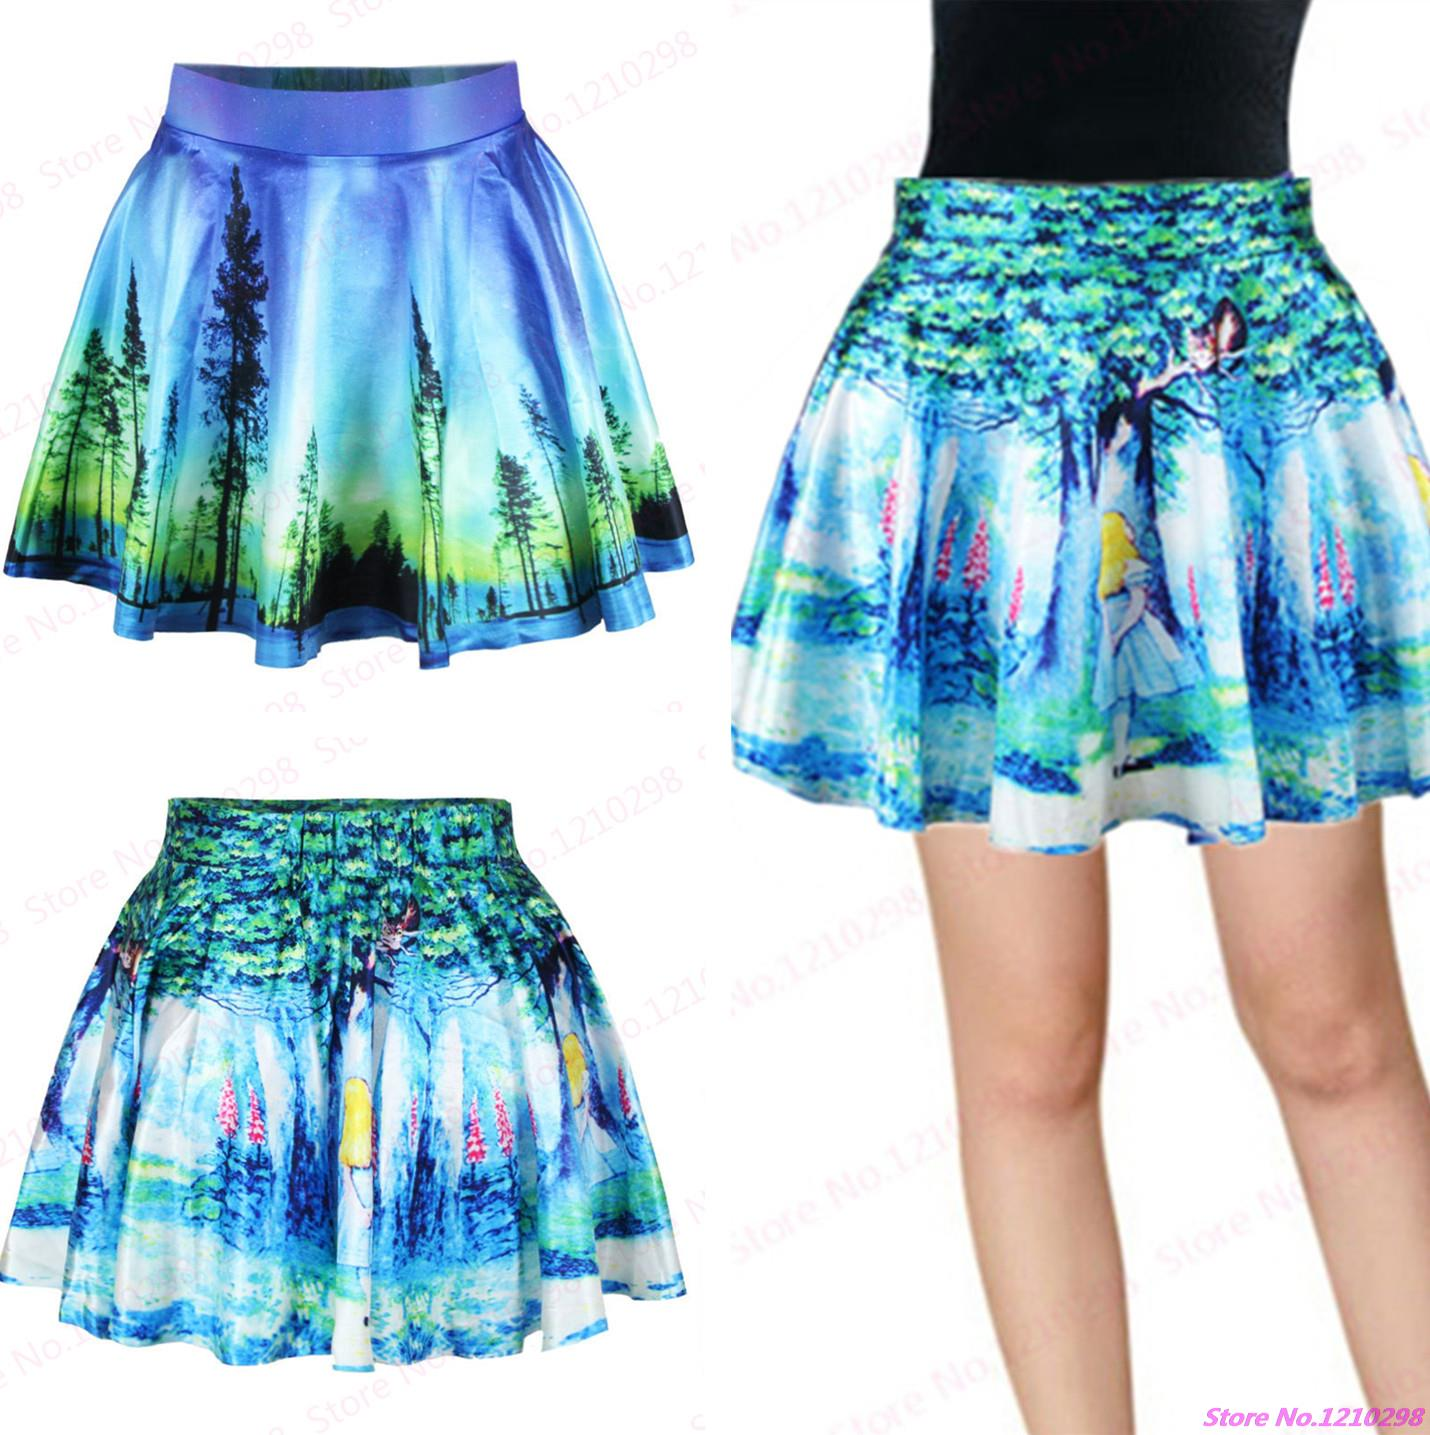 New Summer Gym Fitness Dance Sport Tennis Miniskirt Drop Shipping Pettiskirt Fairy Tales Skirts 3D Print